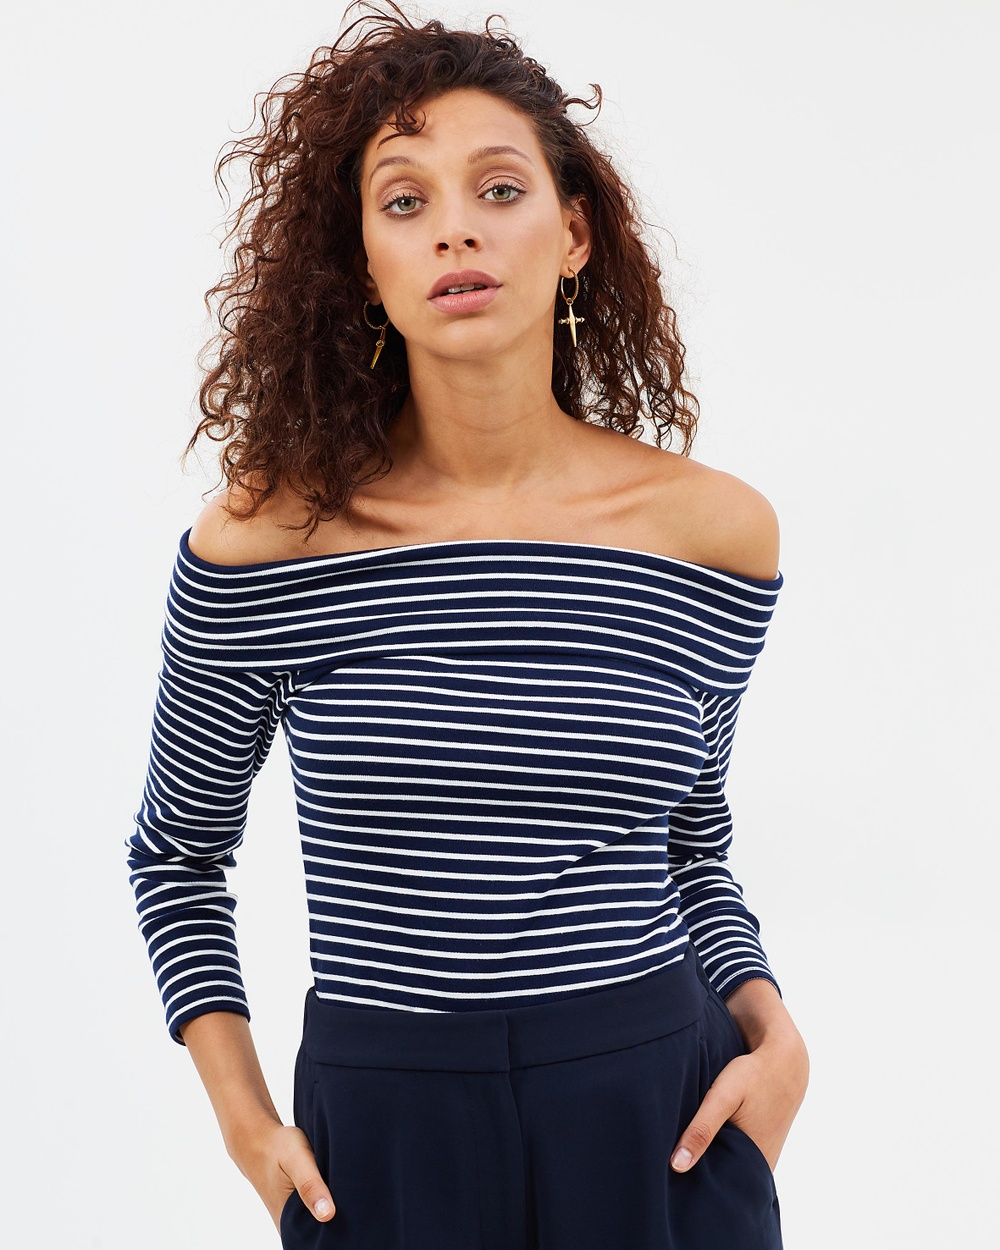 J.Crew Off the Shoulder Striped Foldover Top Cropped tops Navy & White Off-the-Shoulder Striped Foldover Top